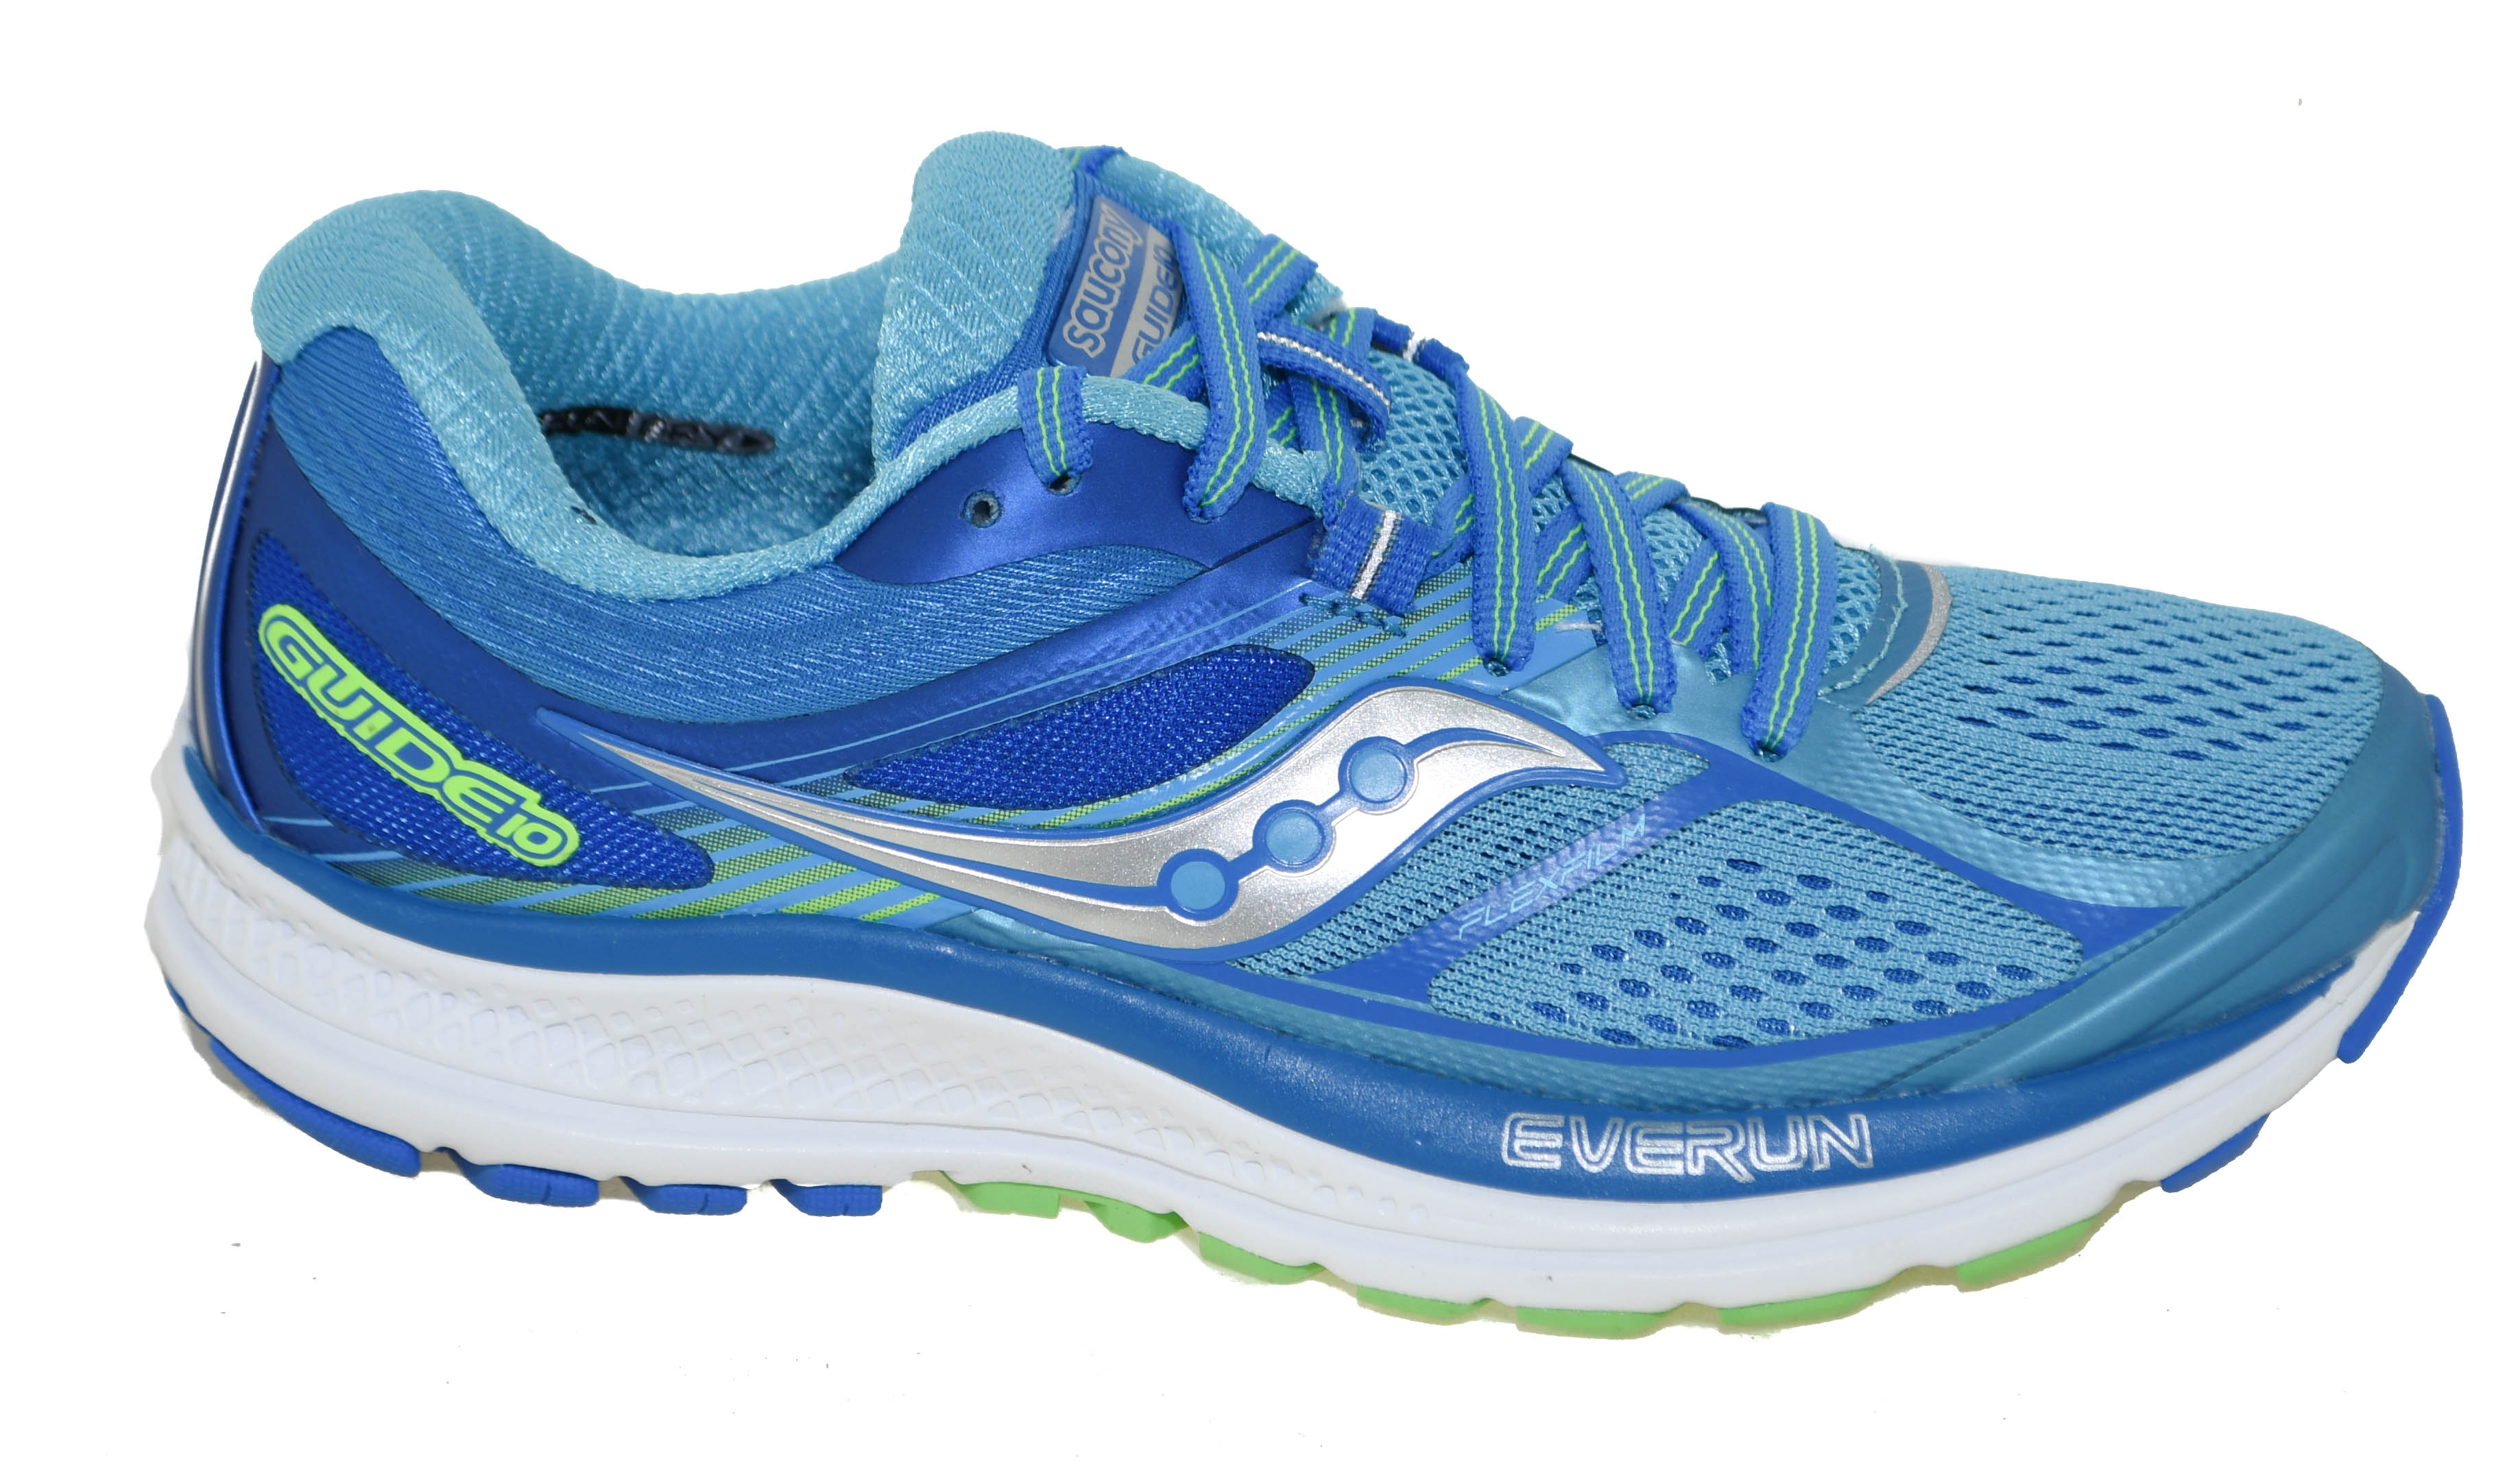 0797590c5bb6 Saucony Women s Guide 10 Running Shoes Light Blue Blue Style S10350 ...